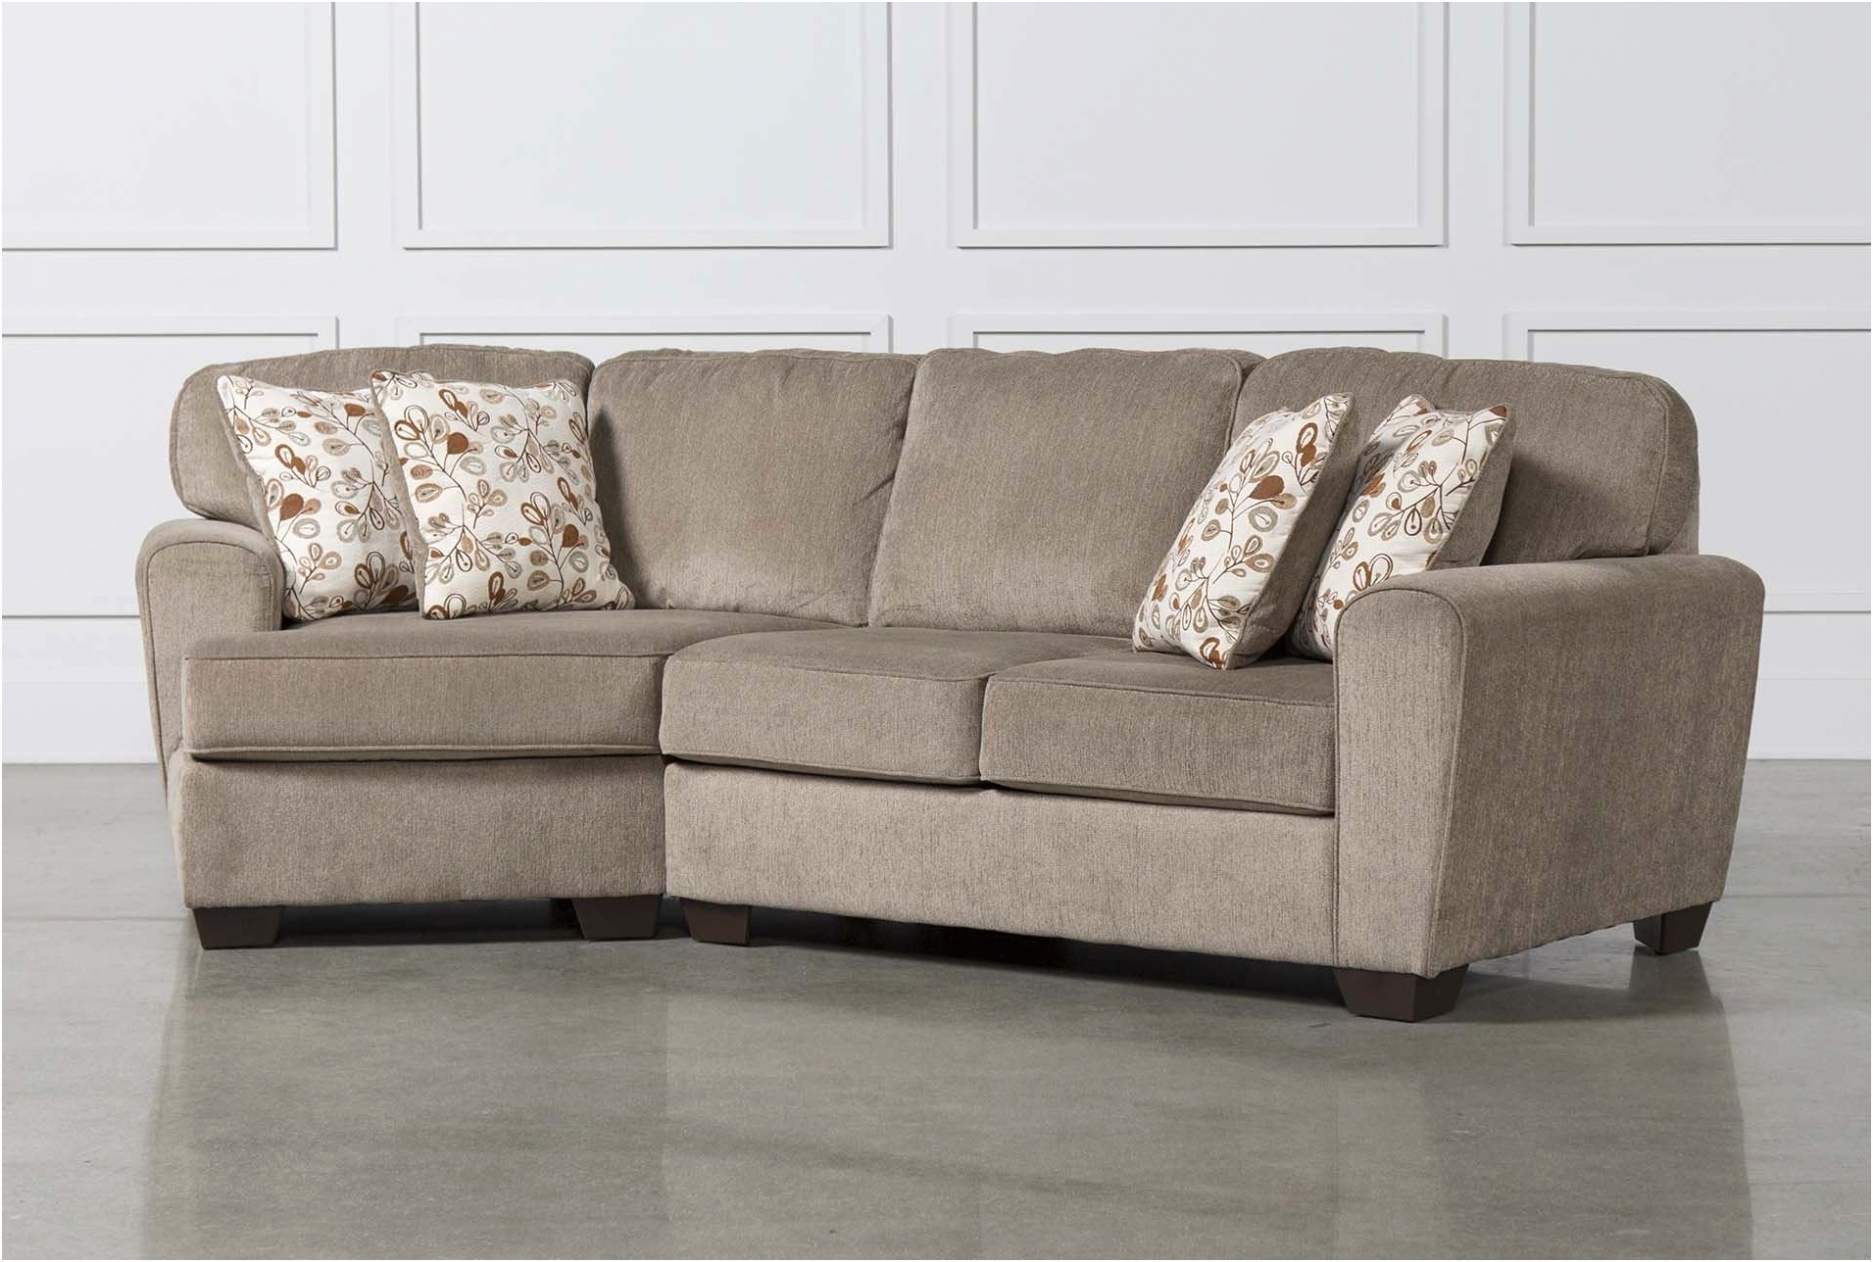 Furniture: Fresh Sectional Sofa With Cuddler Chaise New – Sofa Throughout Sectional Sofas With Cuddler Chaise (View 4 of 10)